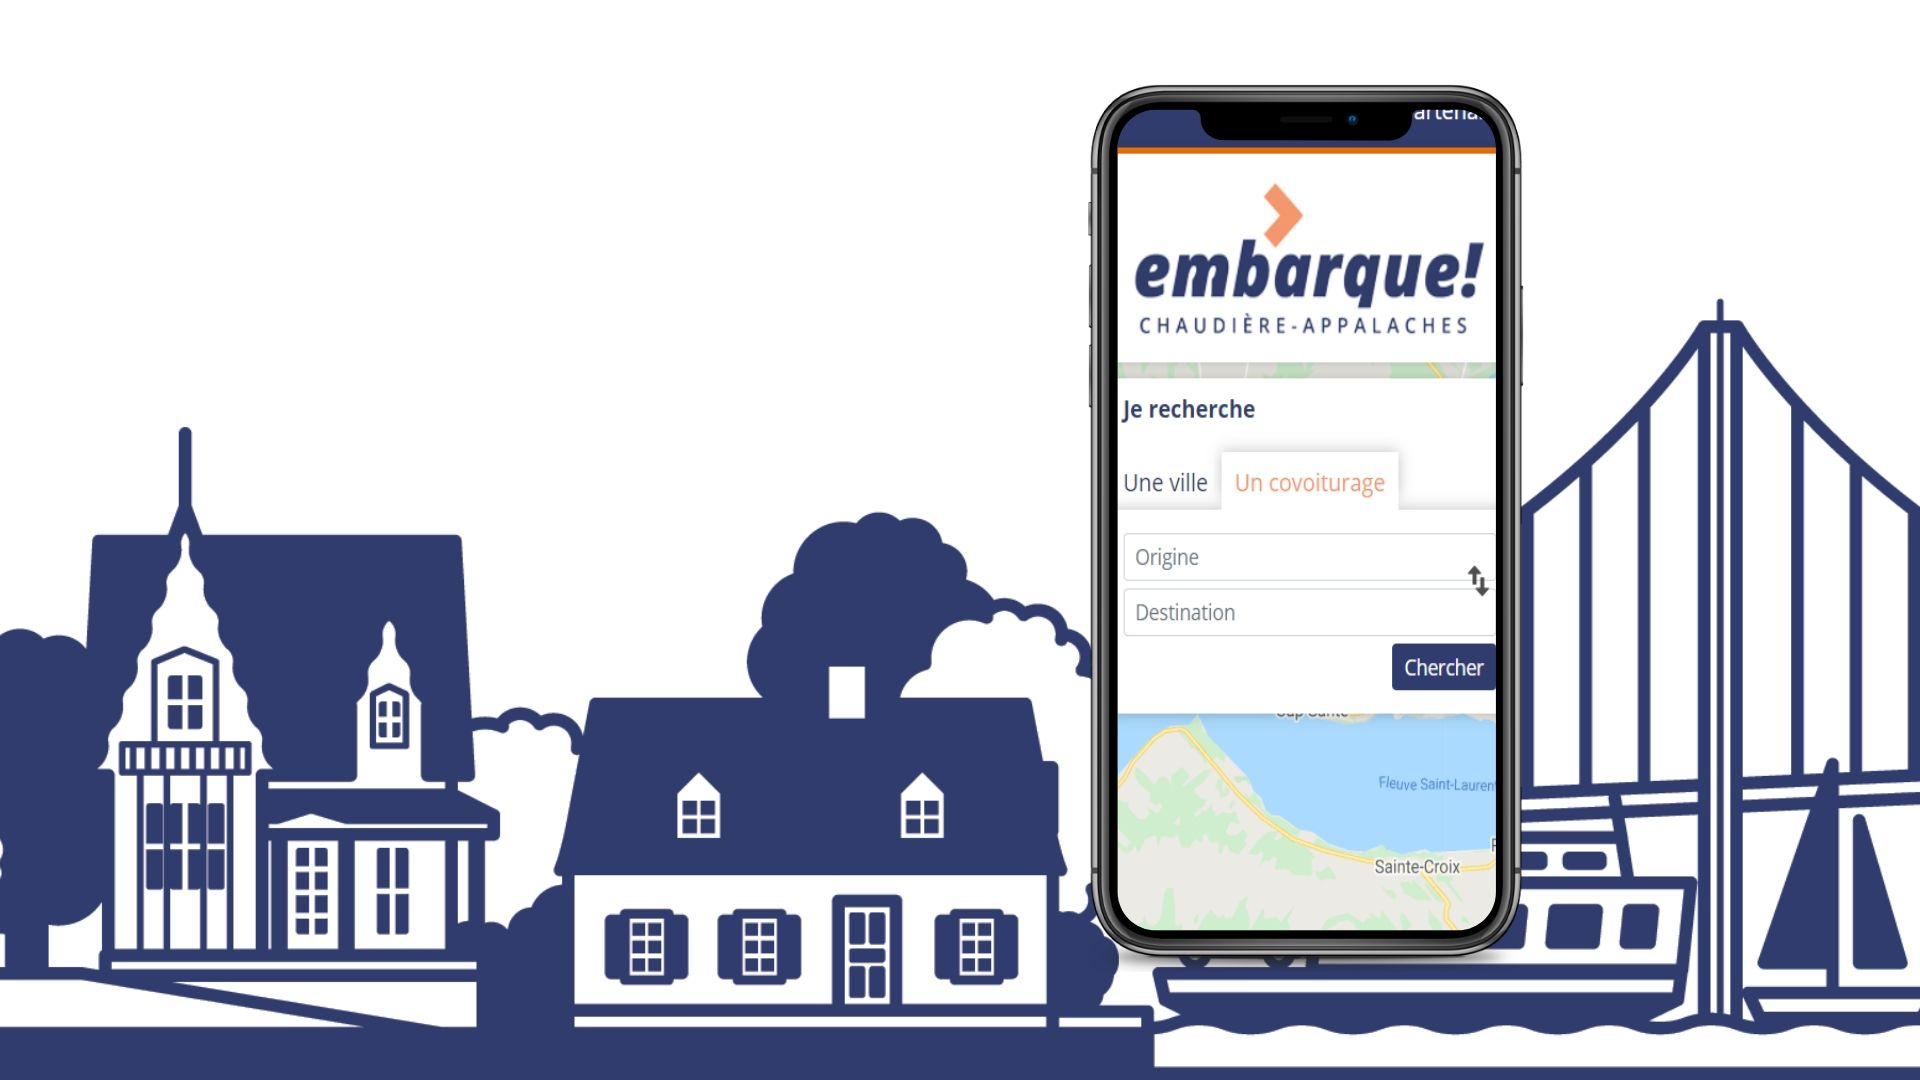 embarque-chaudiere-appalaches